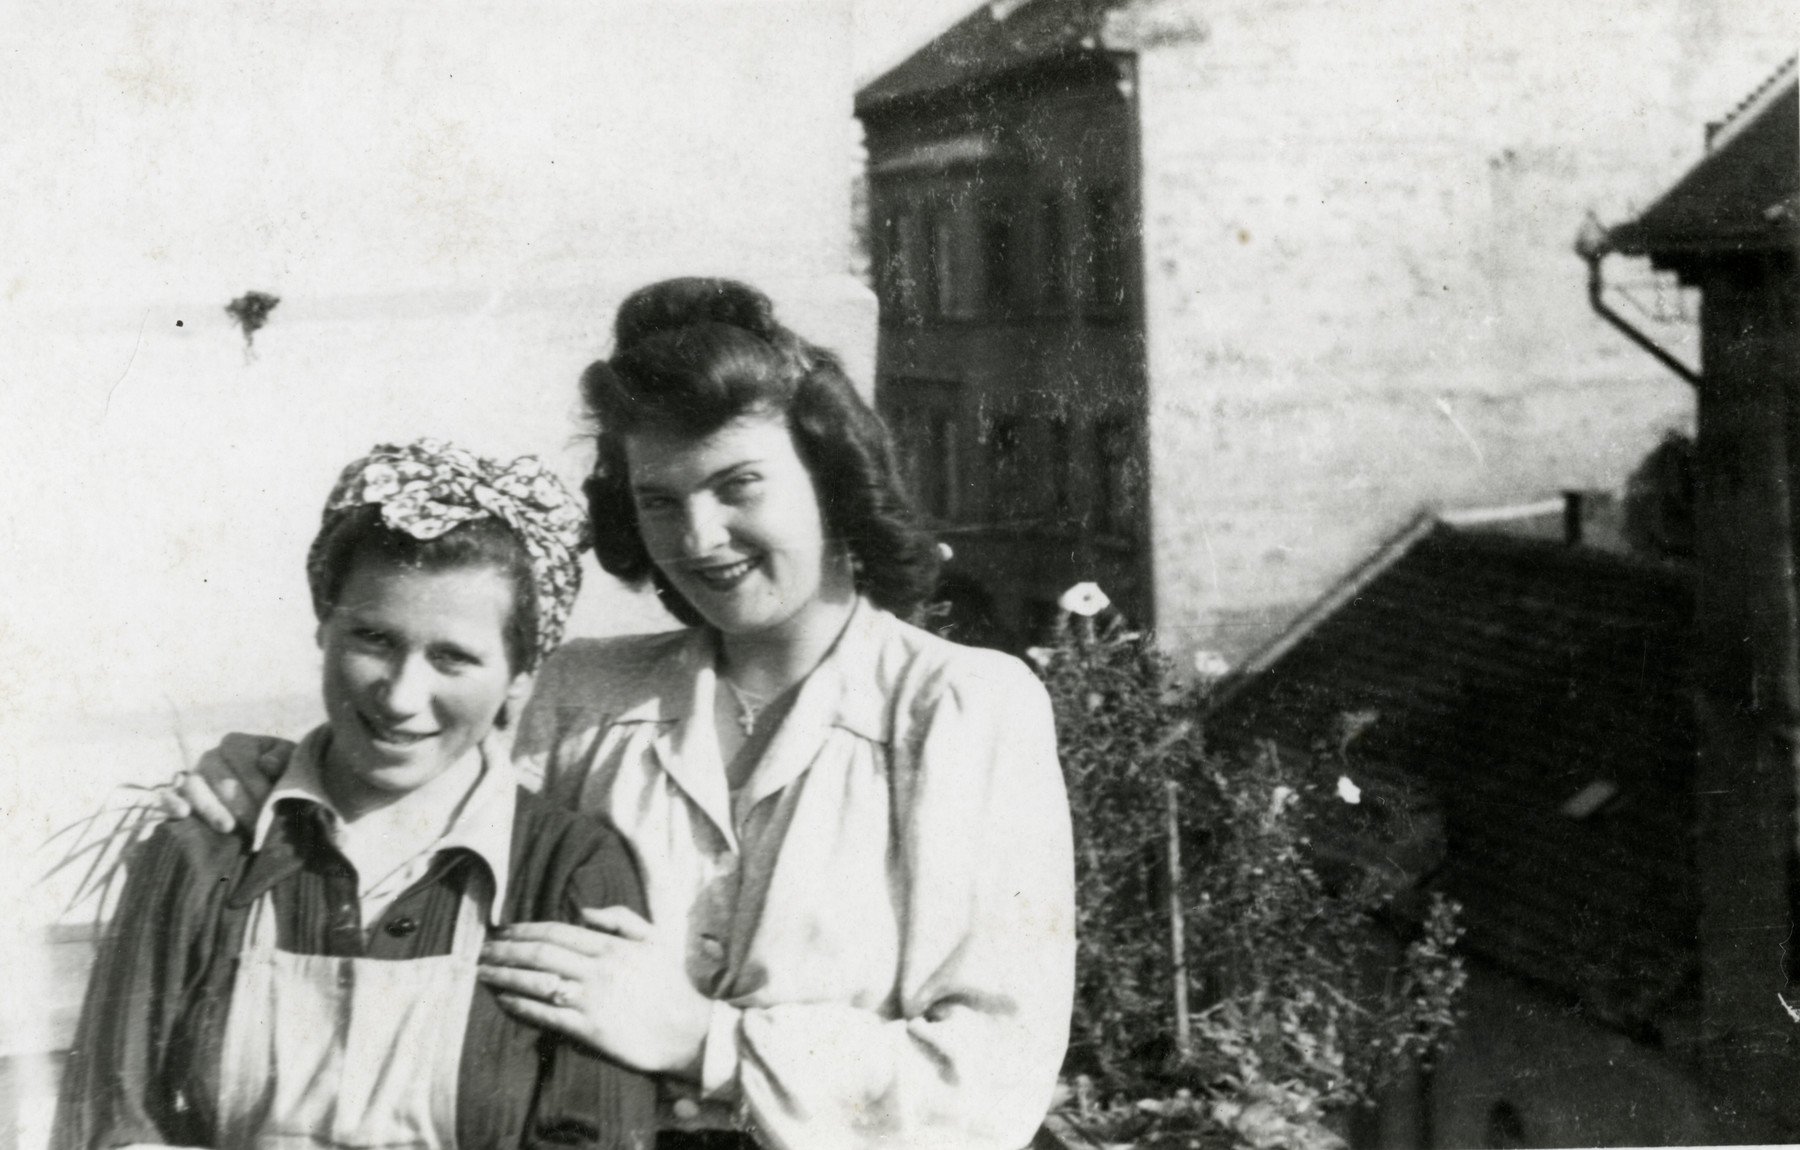 Tzippy Teichman (left) poses with Anushka, the care-taker of their apartment on 19 Retek Street.  For some weeks Tzippy and Ephraim allowed David Gur, their friend from the resistance, to manufacture false papers in that apartment.